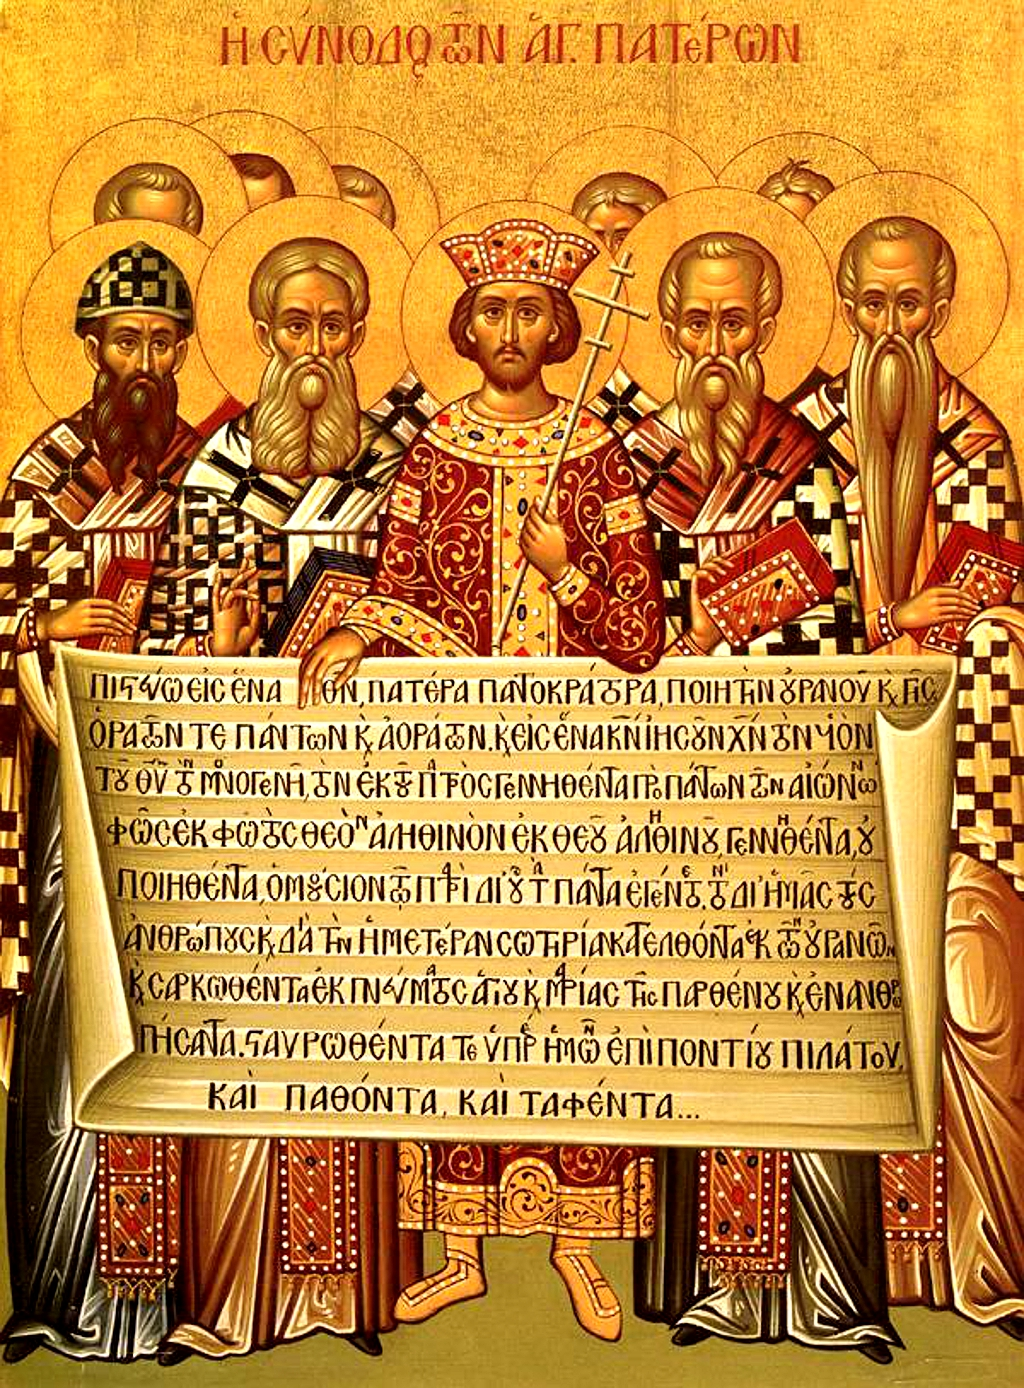 https://i0.wp.com/upload.wikimedia.org/wikipedia/commons/3/31/Nicaea_icon.jpg